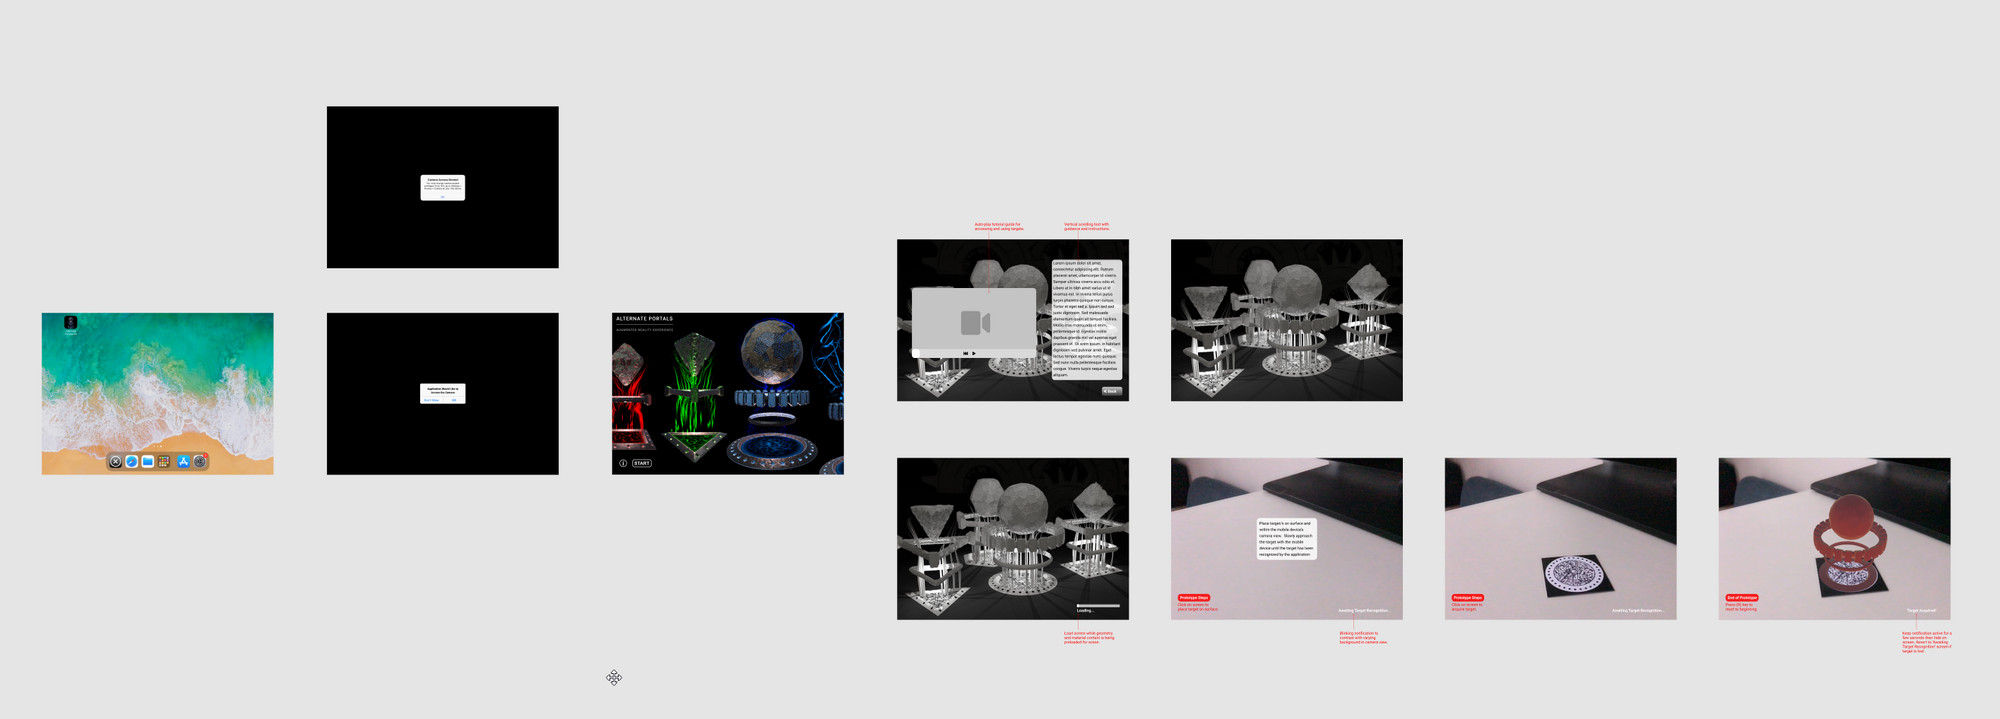 User interface prototype developed with Figma and progresses through the screens that one is intended to go through when using the AR application.